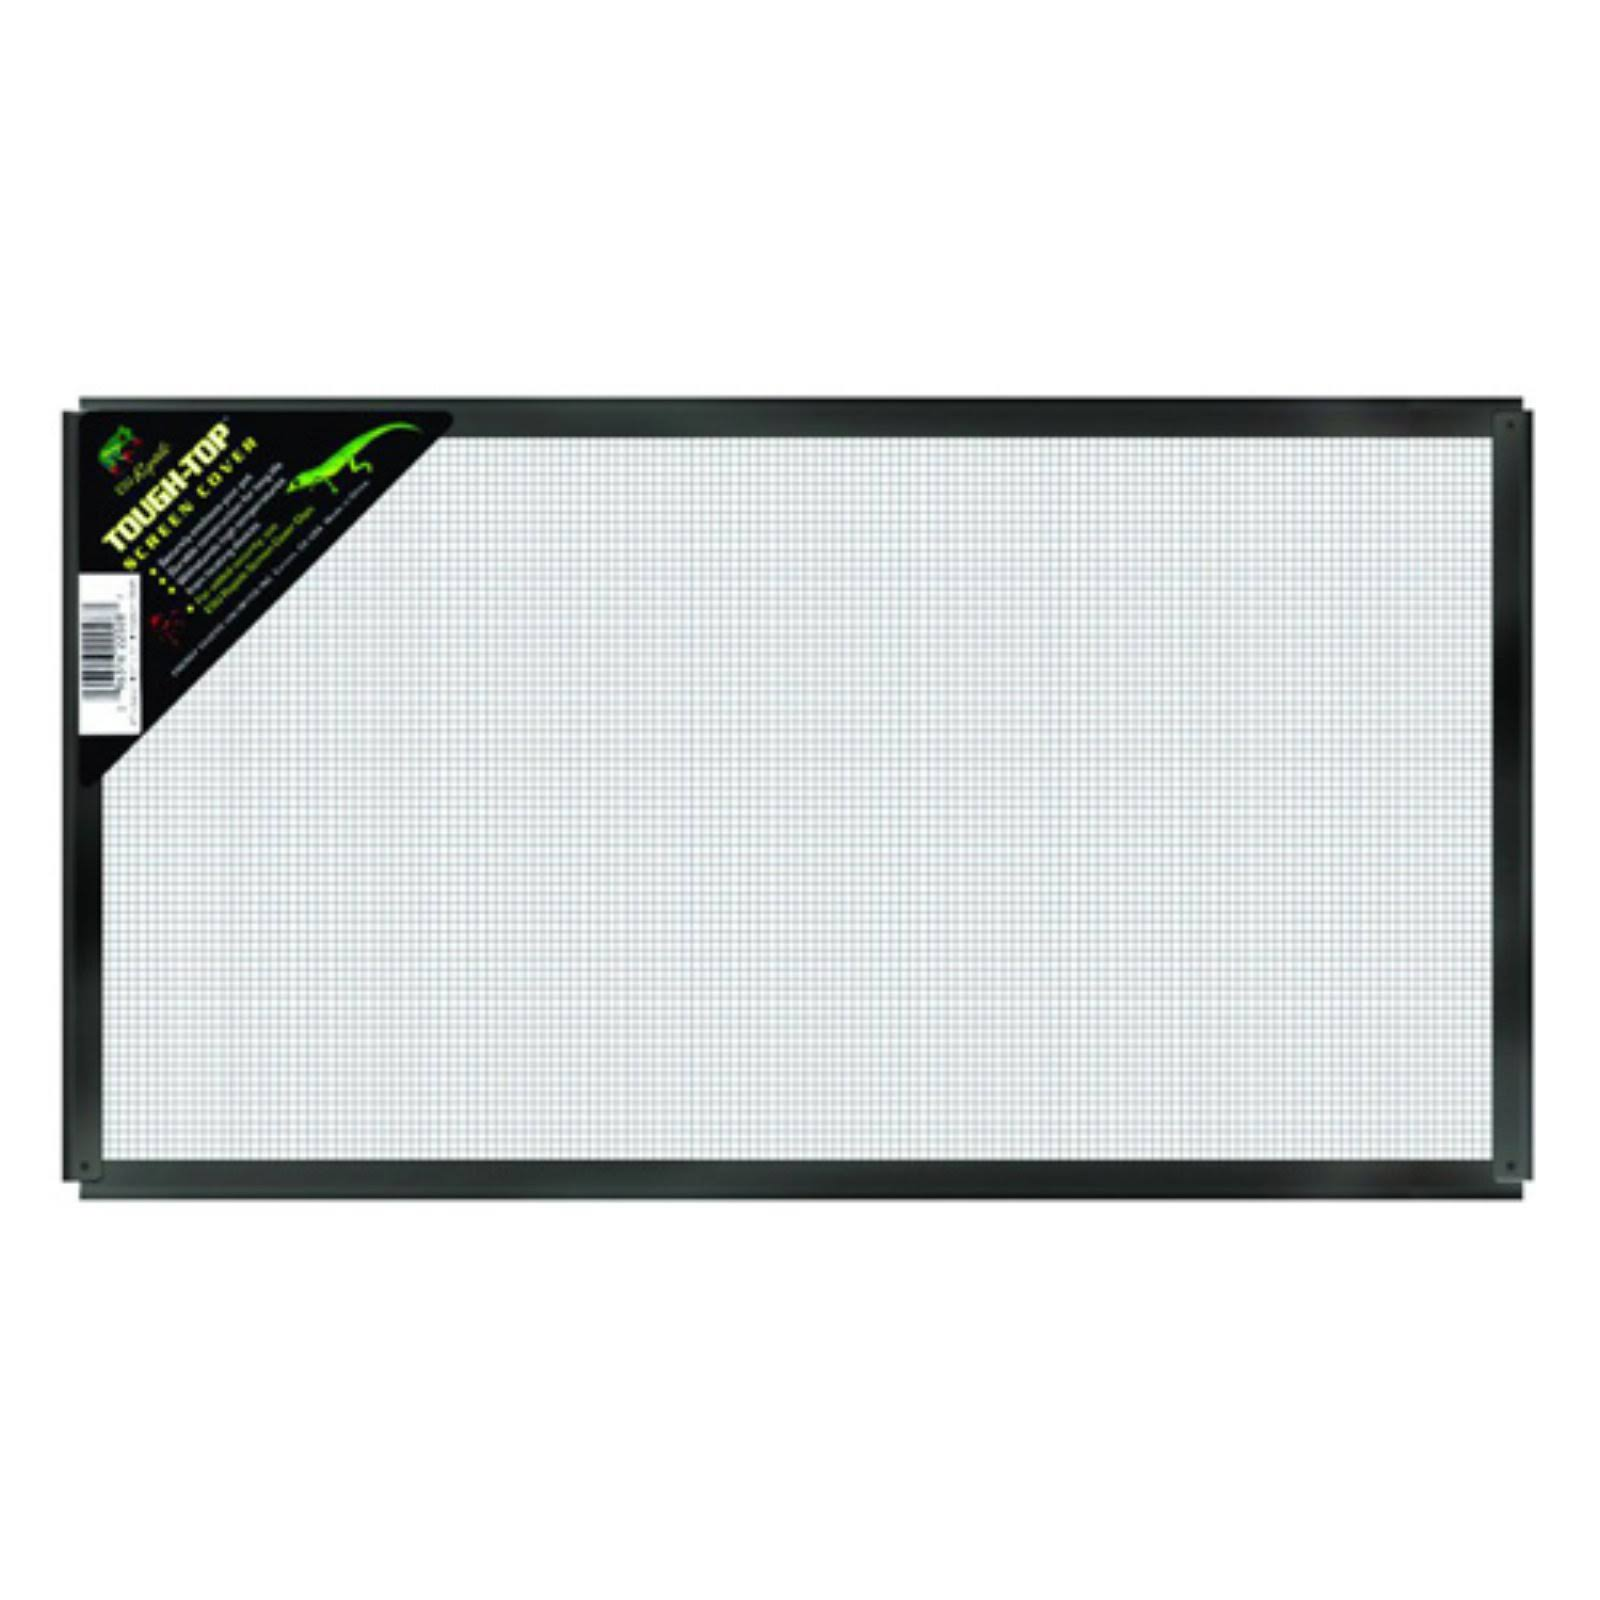 "Zilla 11435 Fresh Air Screen Cover - 48"" x 18"""